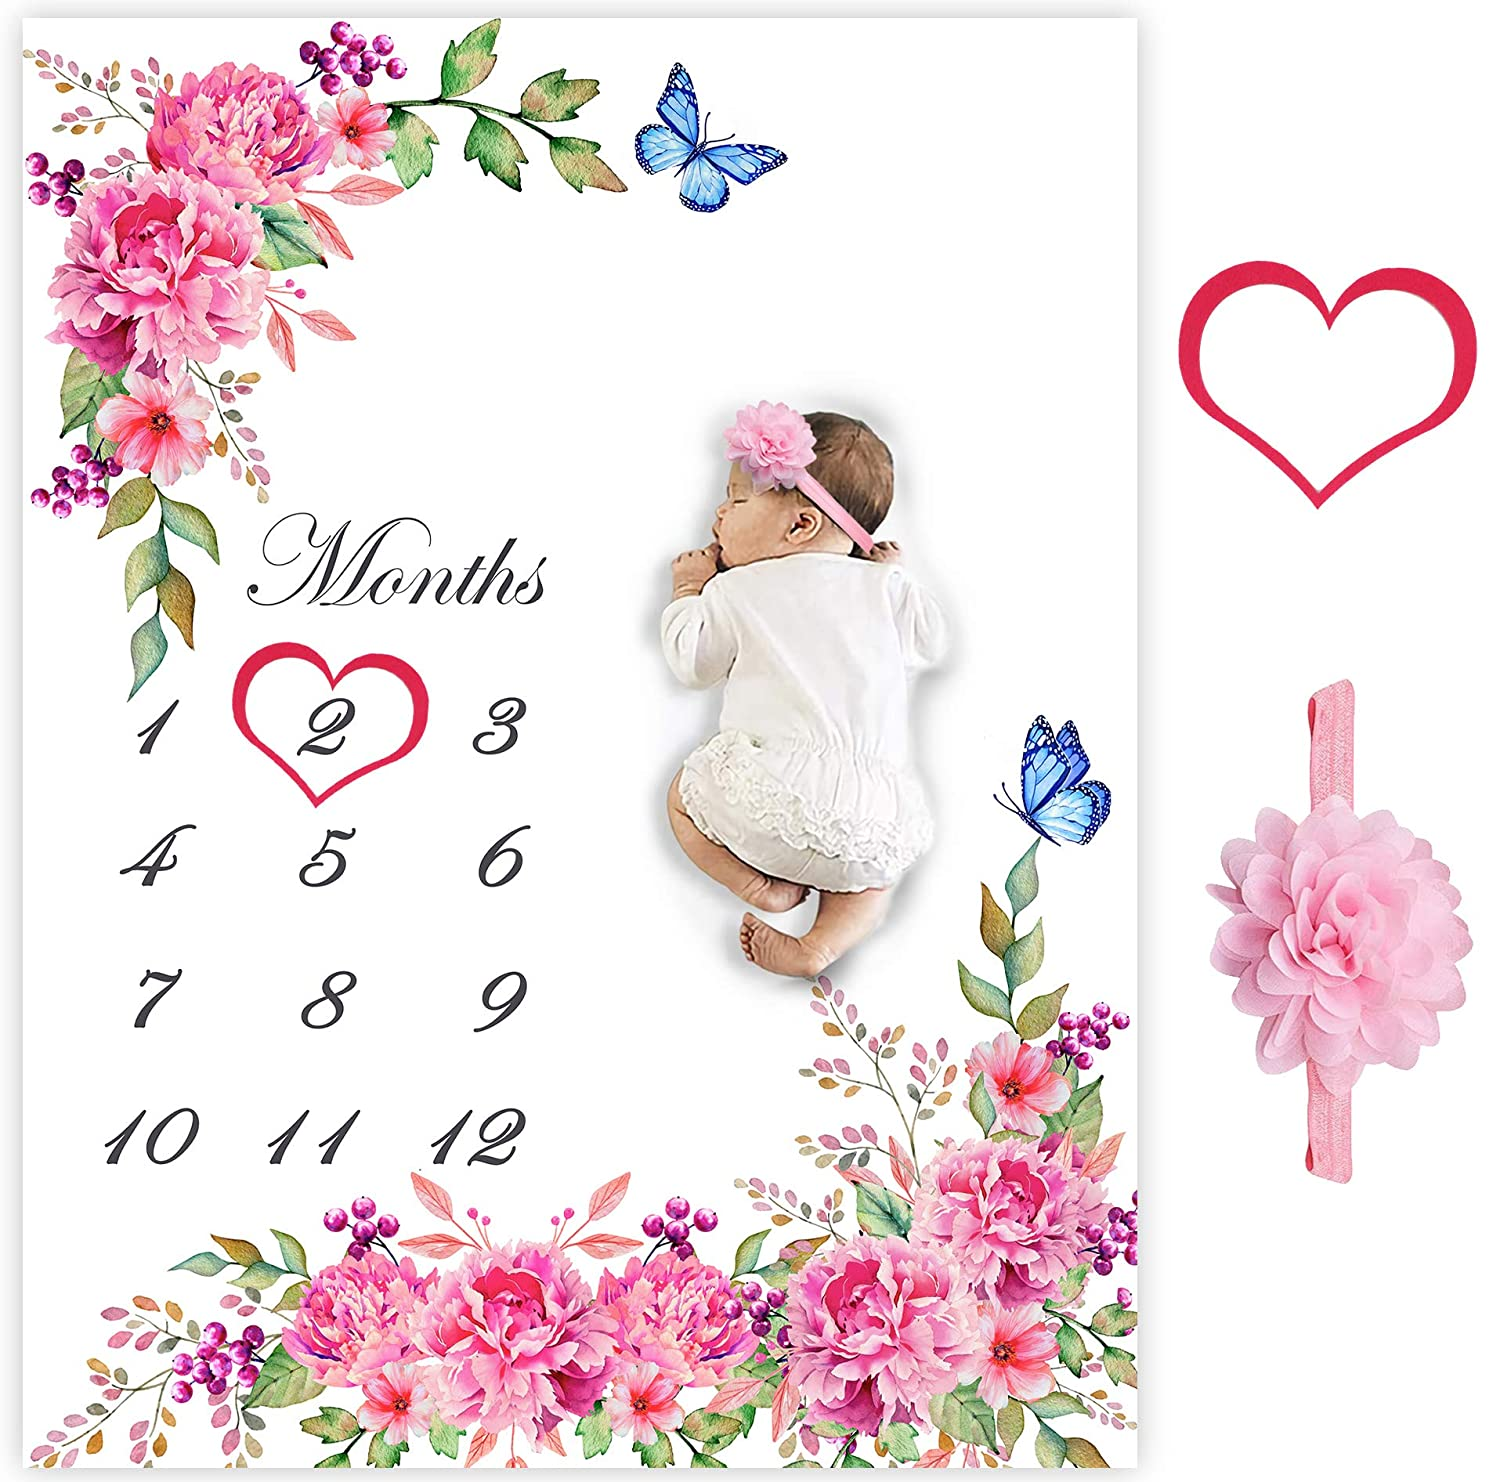 Growth Tracker Navy and Pink Wreath Track Growth and Age New Mom Baby Shower Gift Baby Milestone Blanket Girl Personalized Baby Blanket